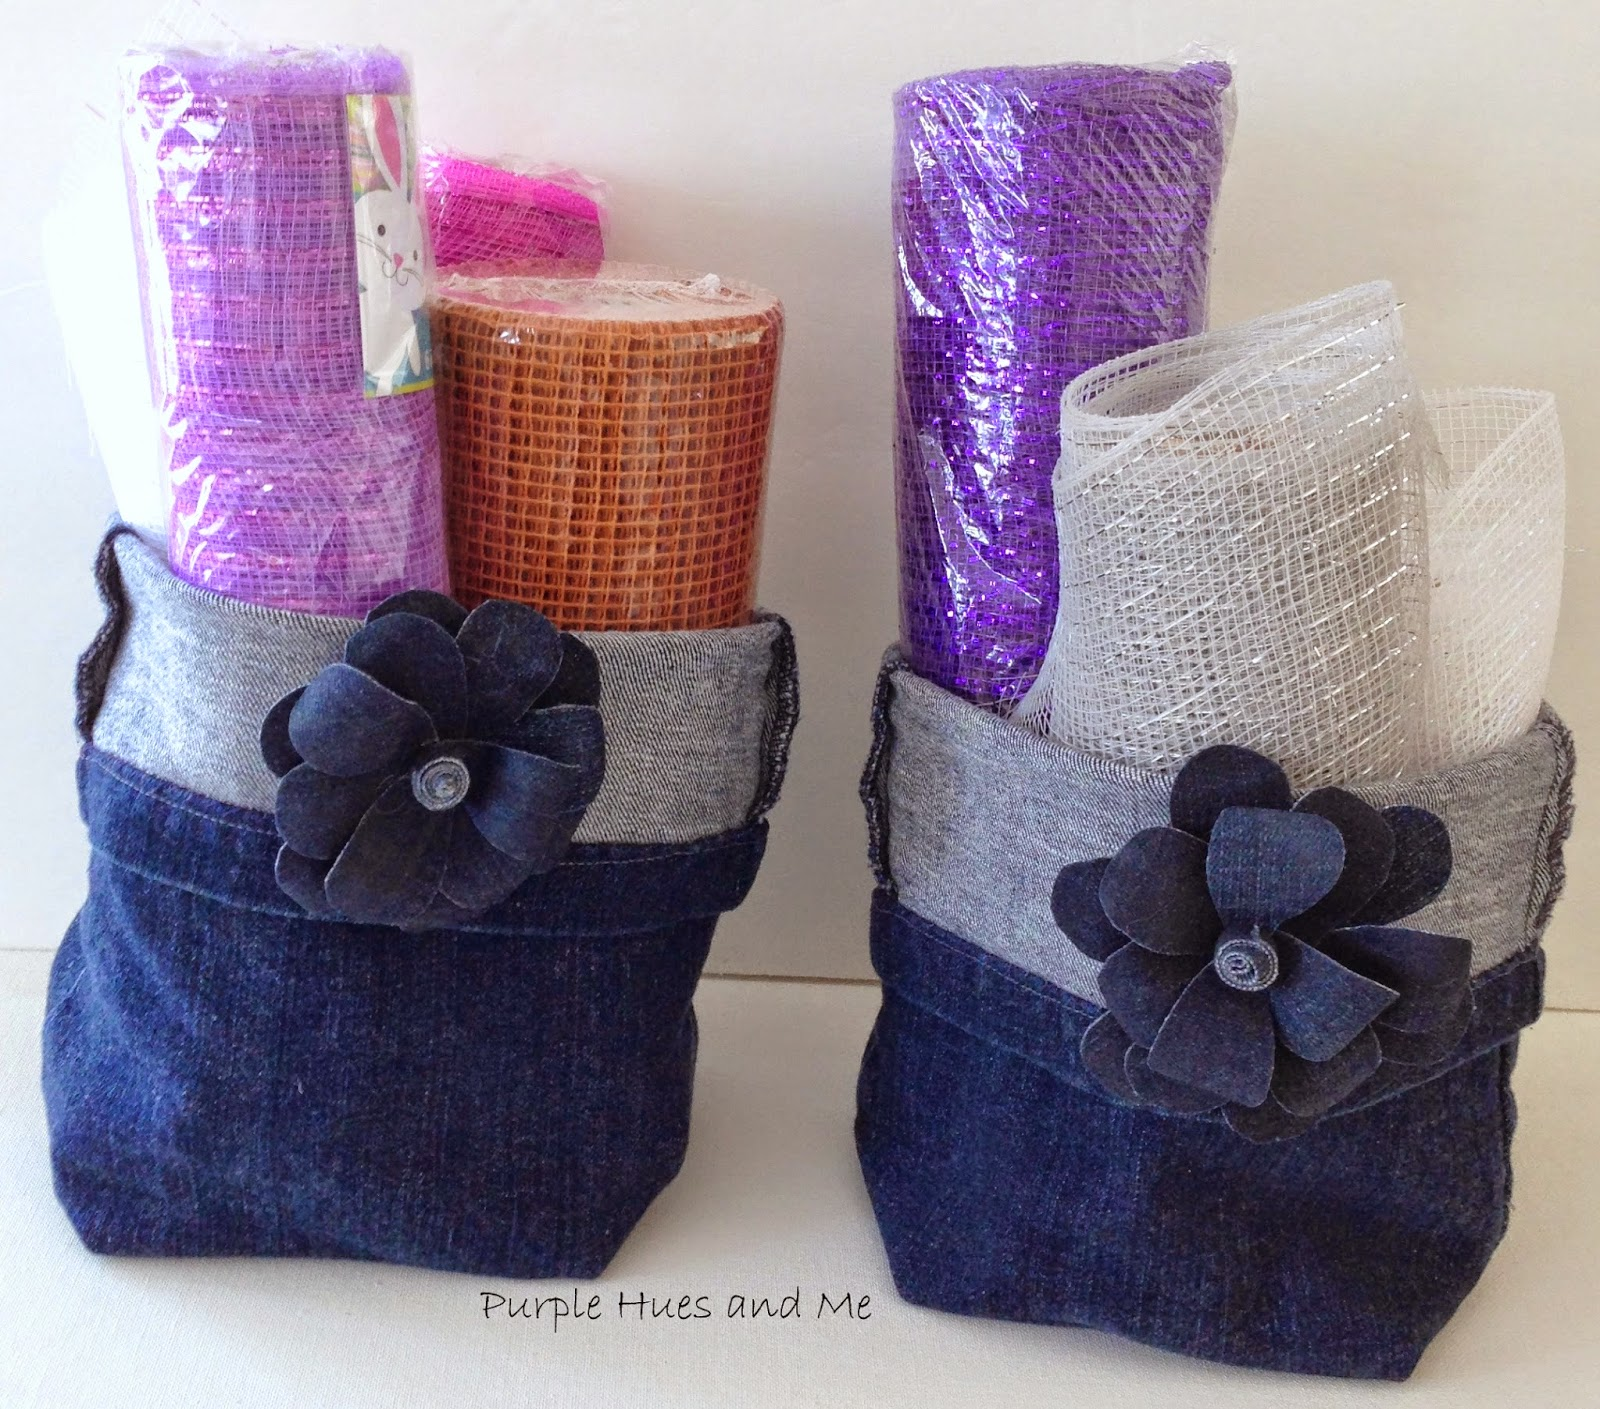 Easy Hand-Sewn Upcycled Denim Storage Basket - HMLP Feature